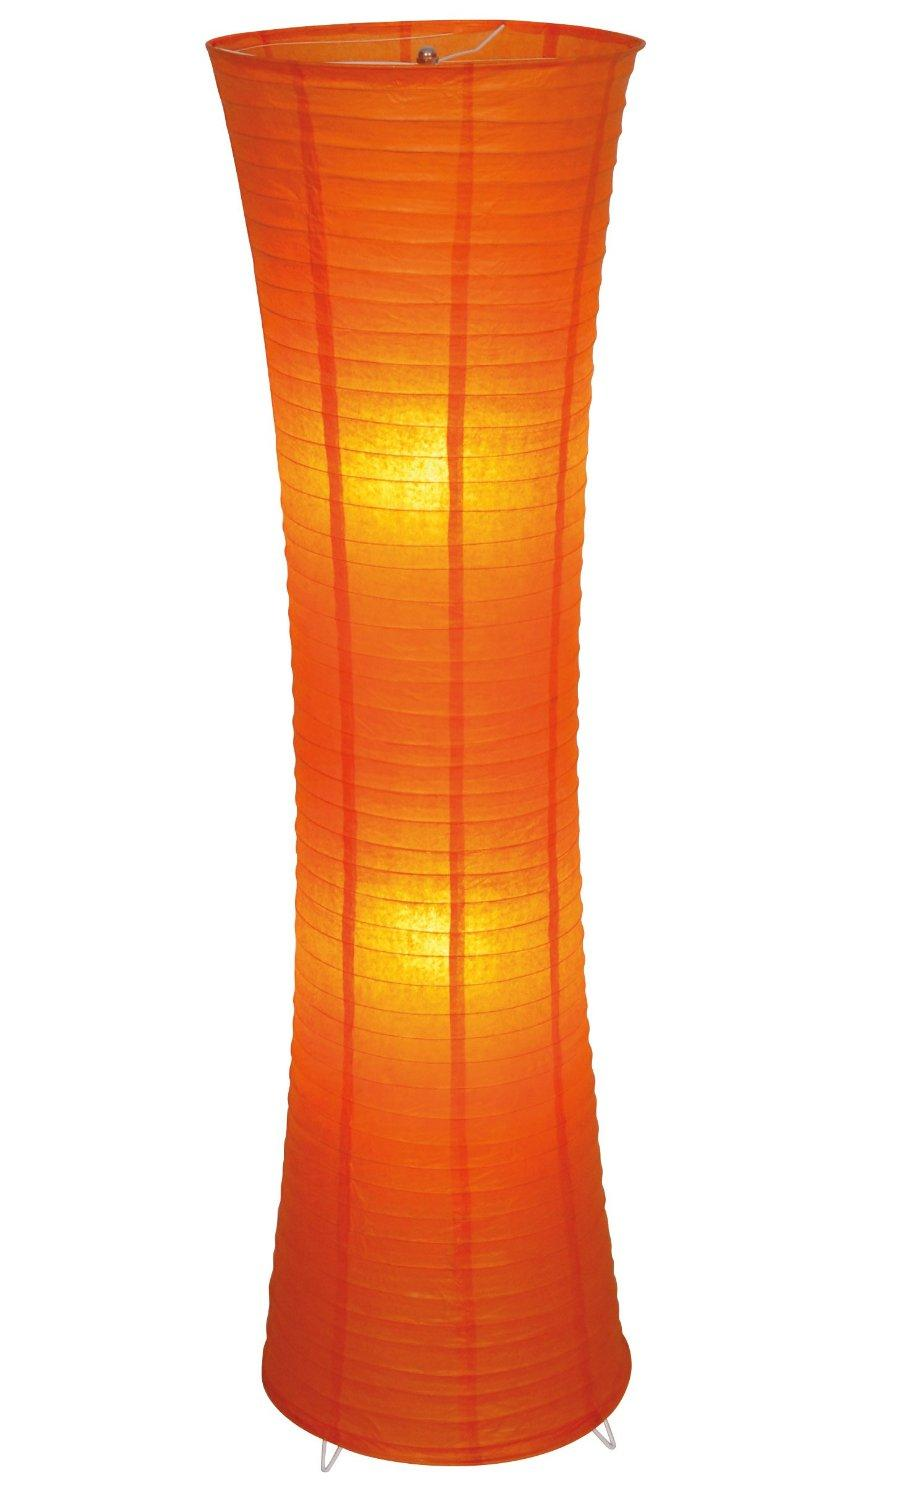 Stehlampe Roter Schirm